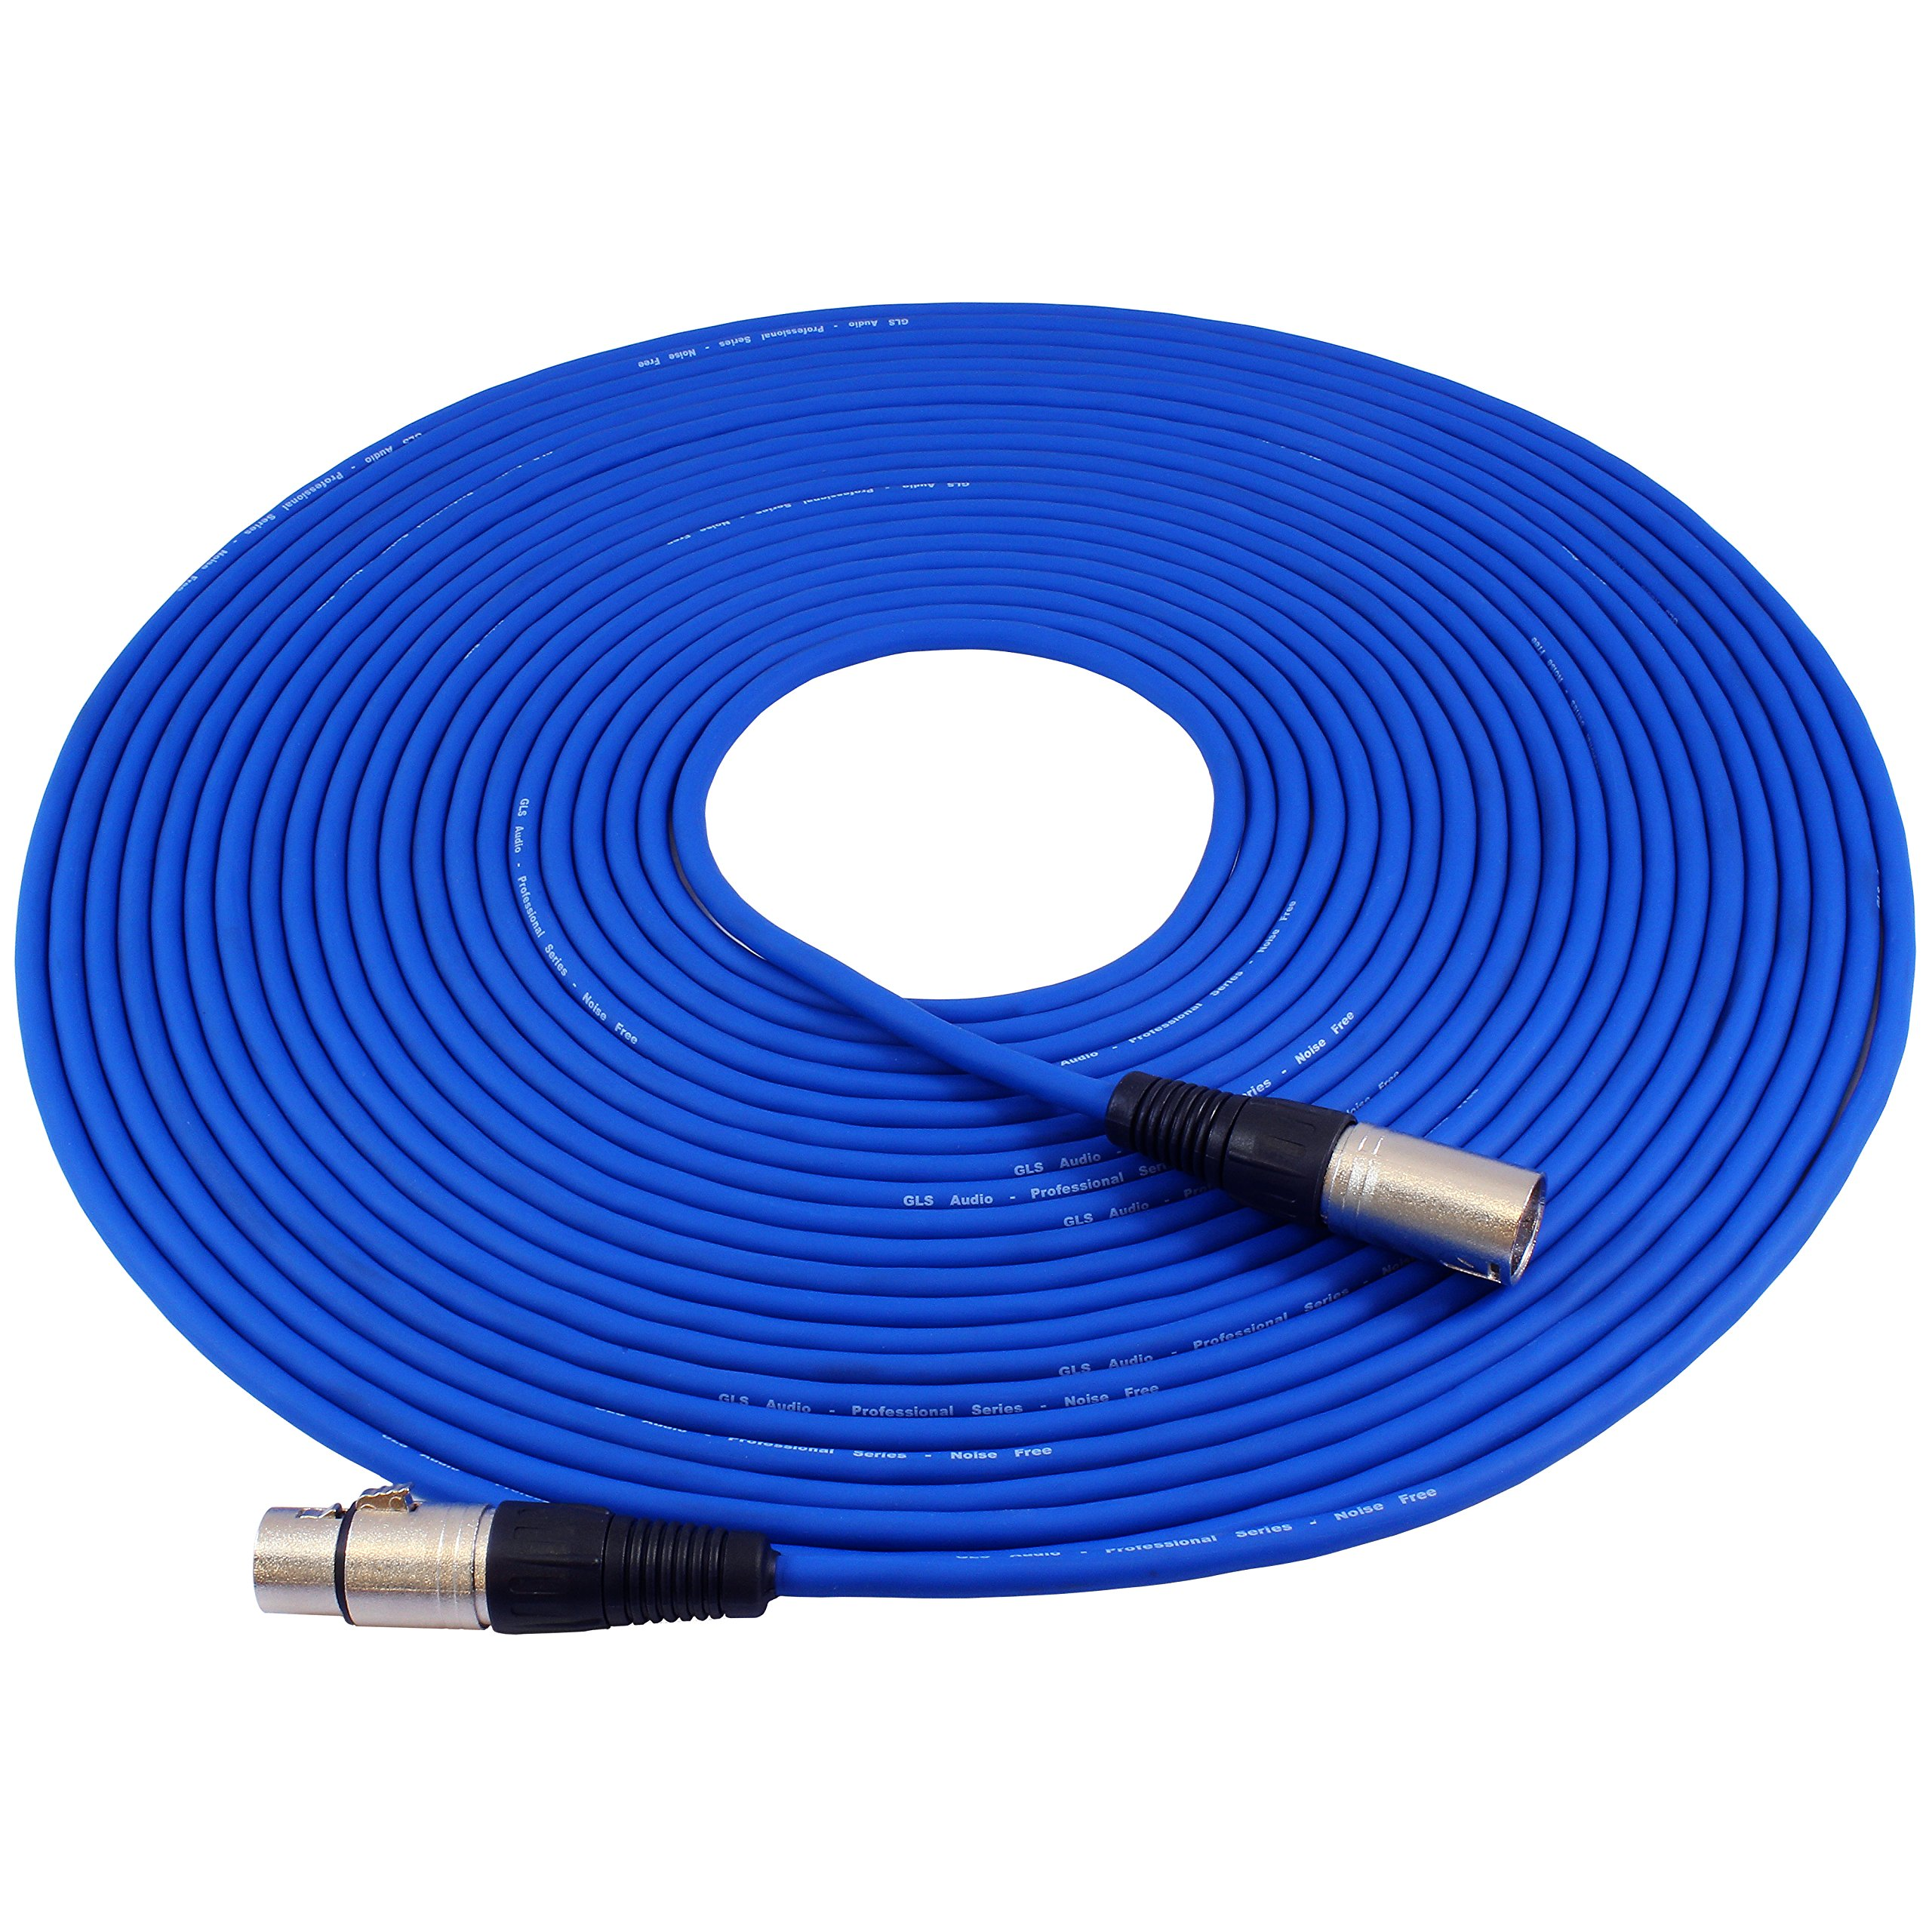 GLS Audio 50ft Mic Cable Patch Cord - XLR Male to XLR Female Blue Microphone Cable - 50' Balanced Mike Snake Cord